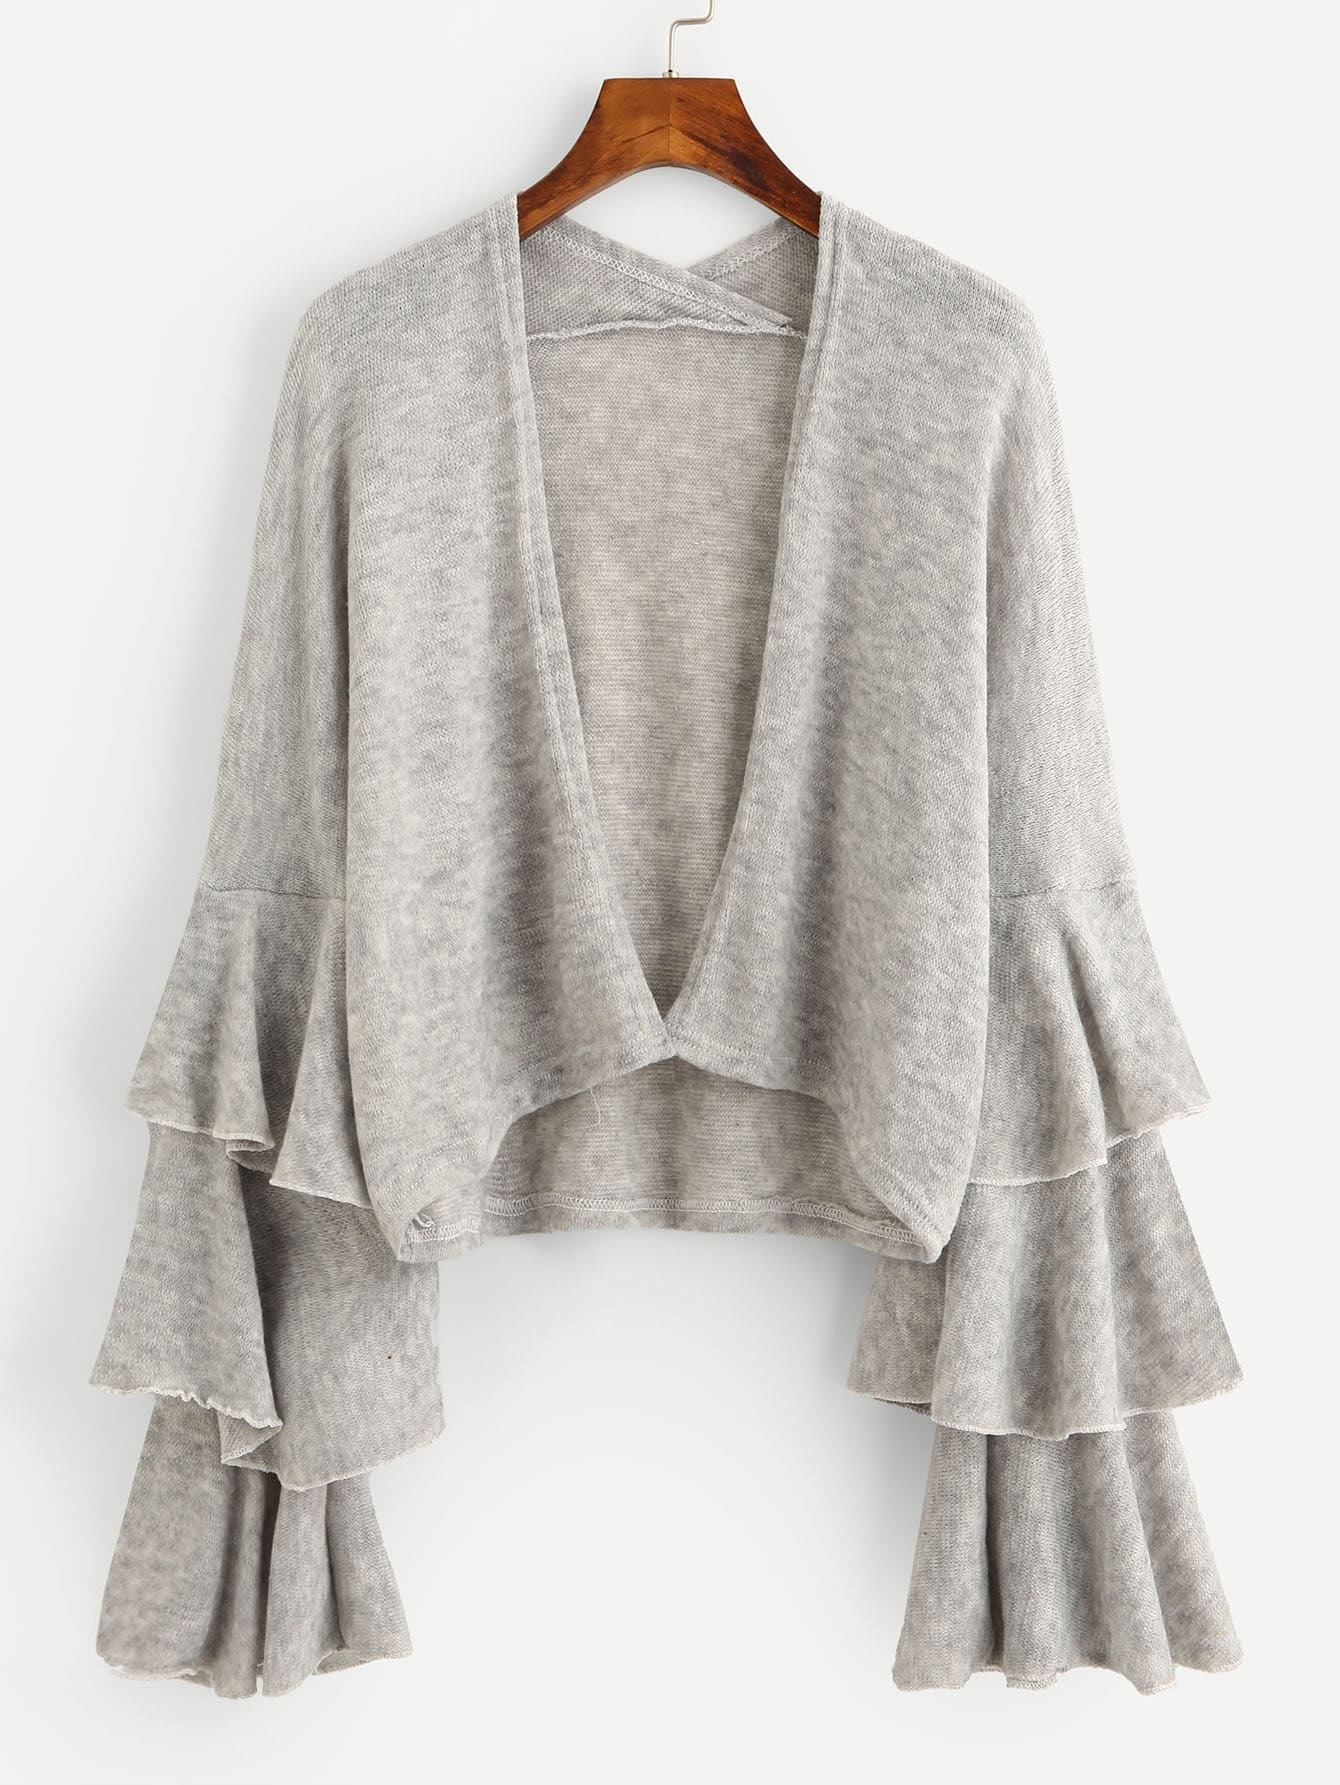 Tiered Frill Sleeve Open Front Knit Sweater Cardigan inc new beige women s small s marled knit open front cardigan sweater $89 201